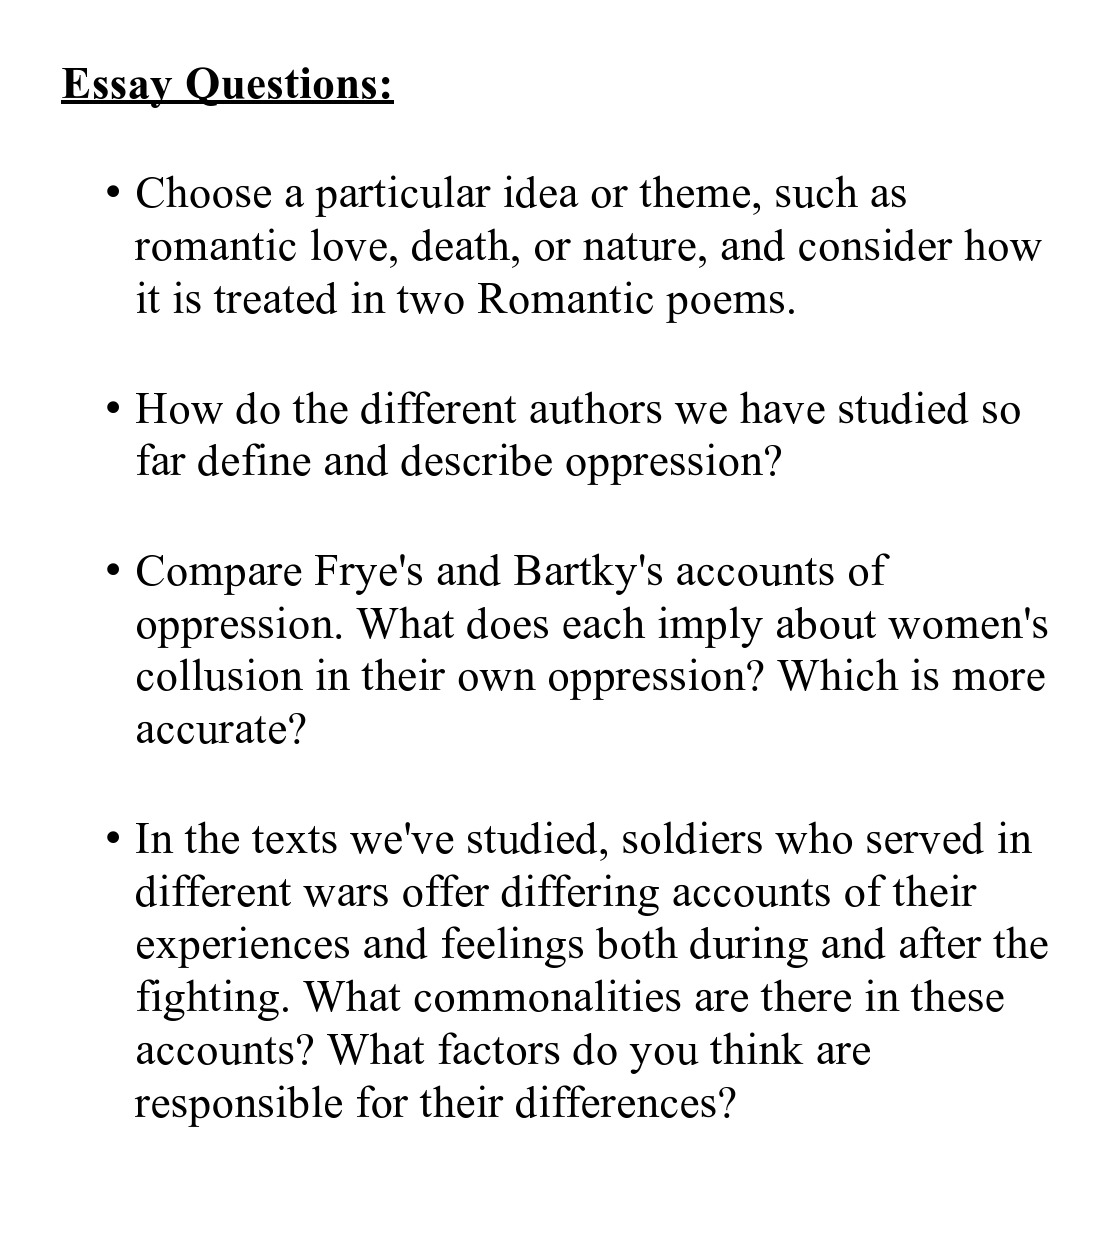 003 Essay Questions College Conclusion Surprising Good For Application Examples Full